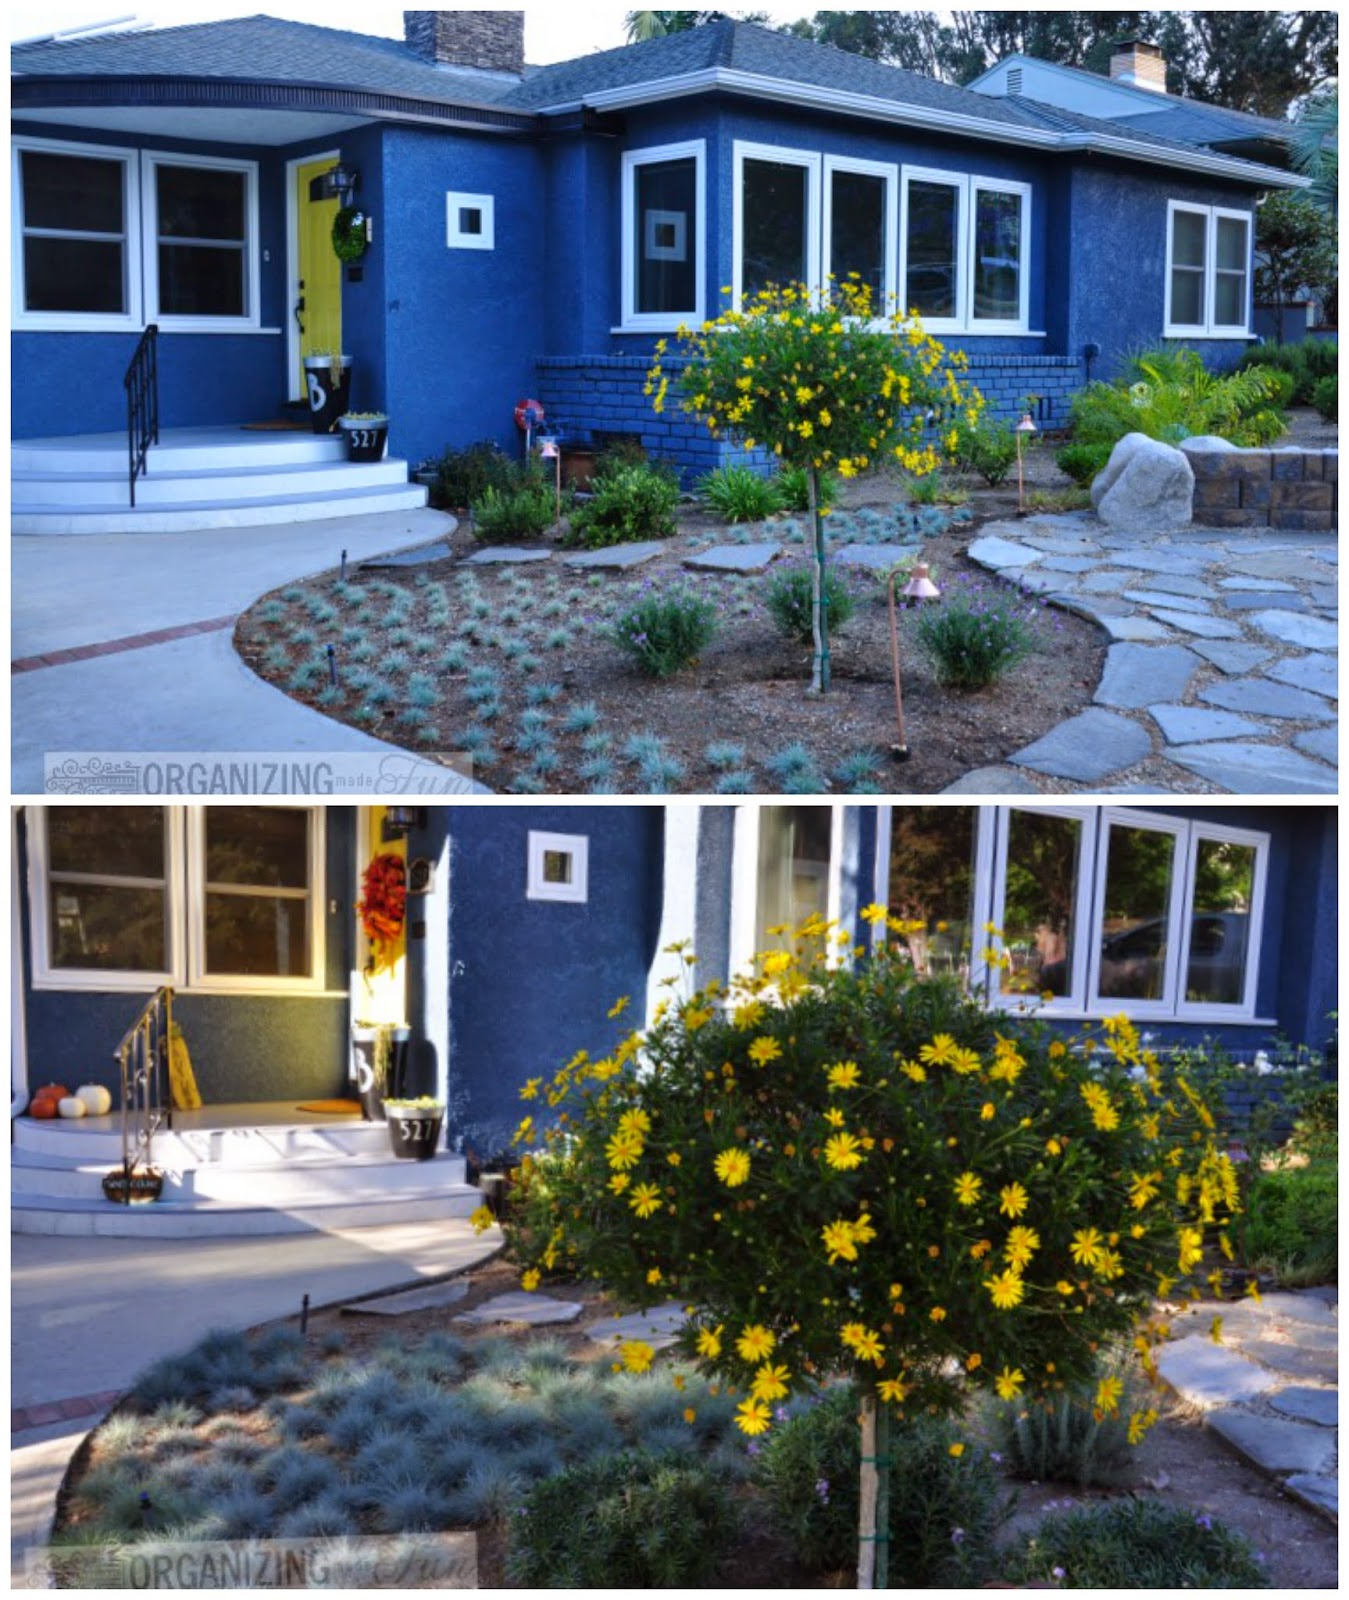 Front house curb appeal and drought tolerant six months apart :: OrganizingMadeFun.com